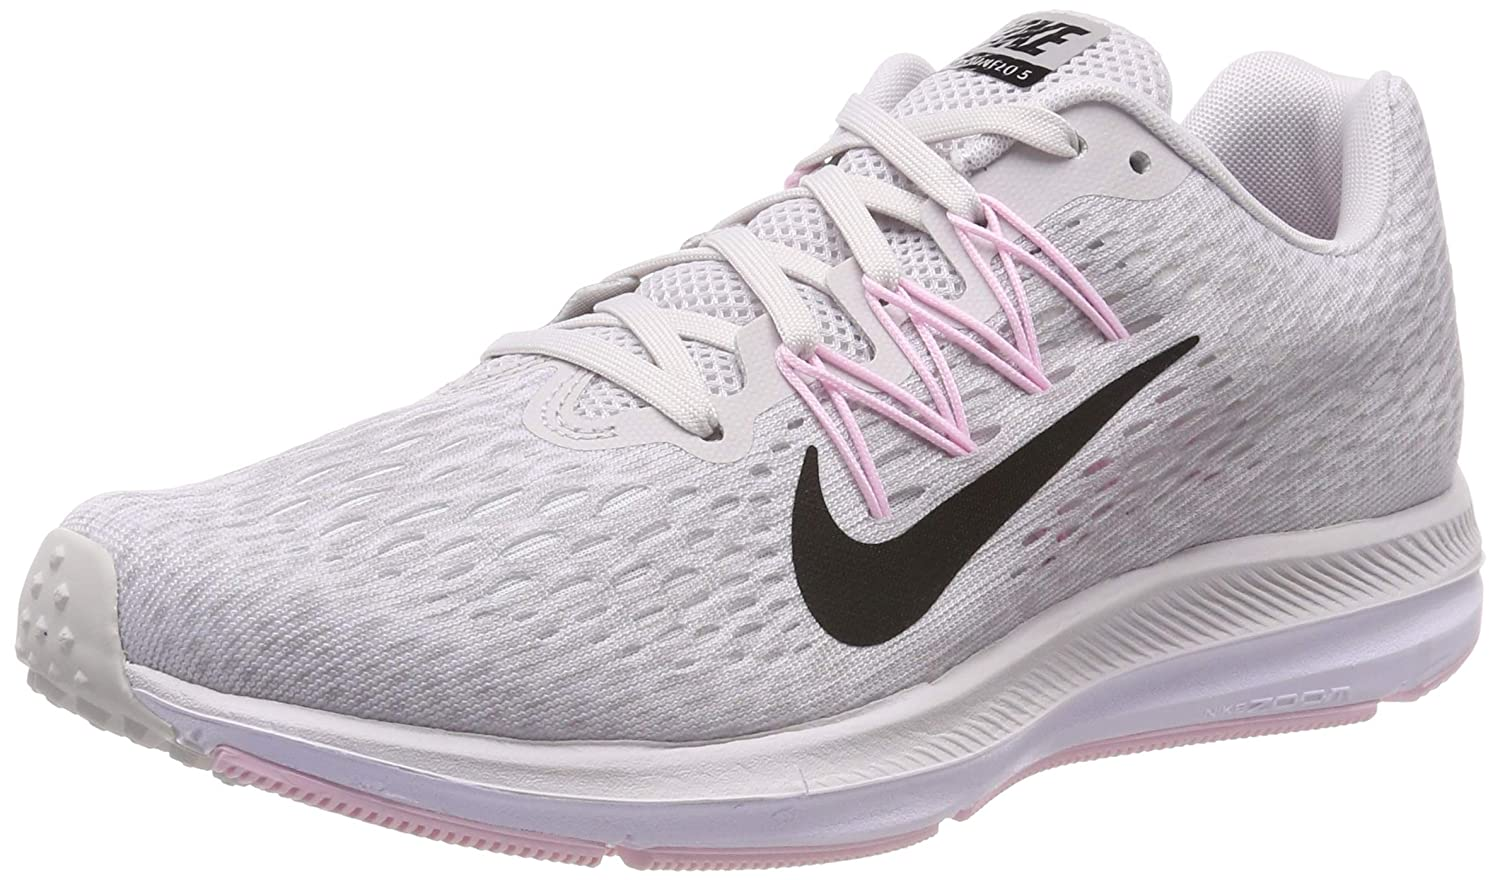 09067de075f640 Nike Women s WMNS Zoom Winflo 5 Running Shoes  Amazon.co.uk  Shoes   Bags